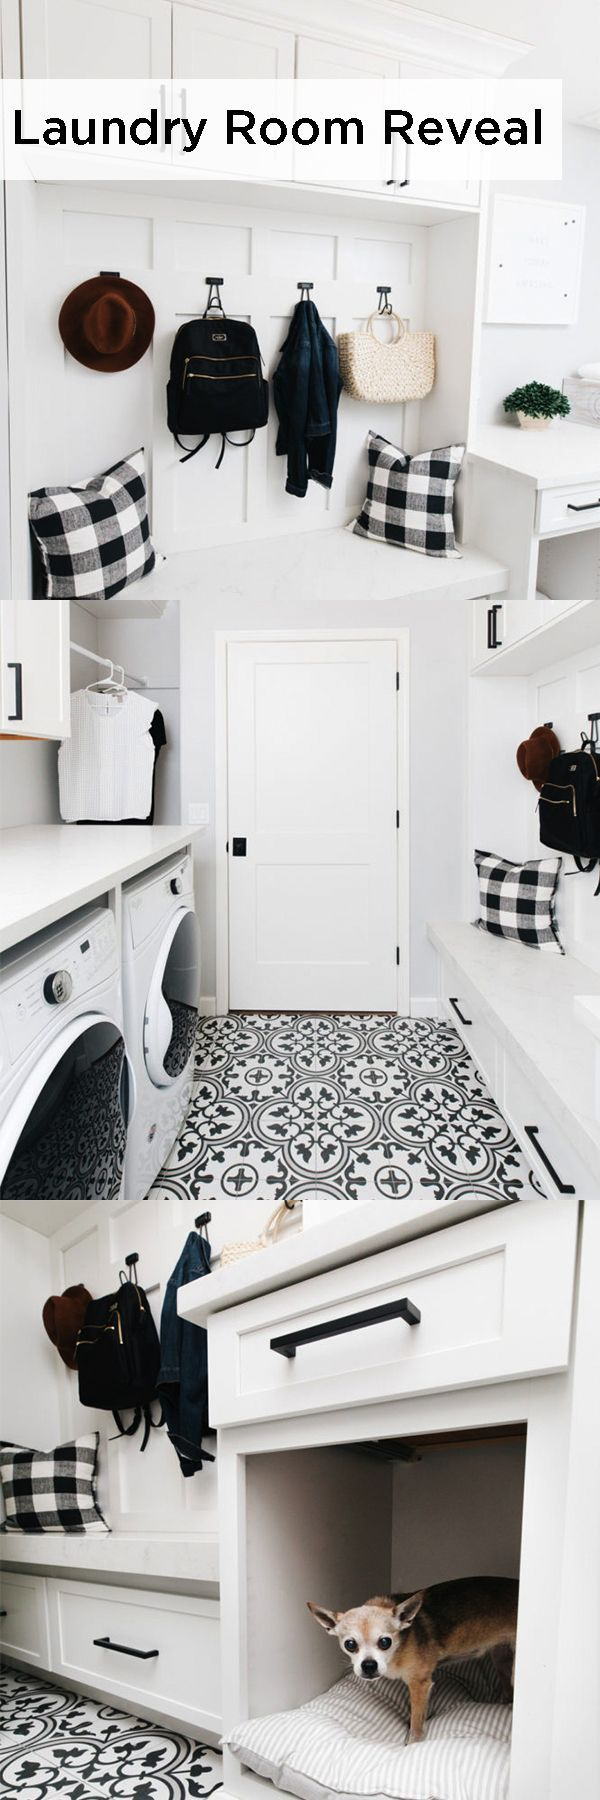 You'll want to run your wash an extra cycle just to spend more time in this laundry room remodel from the TomKat Studio. Montgomery style Diamond cabinets in a White finish bring a fresh look for all members of the family to enjoy.